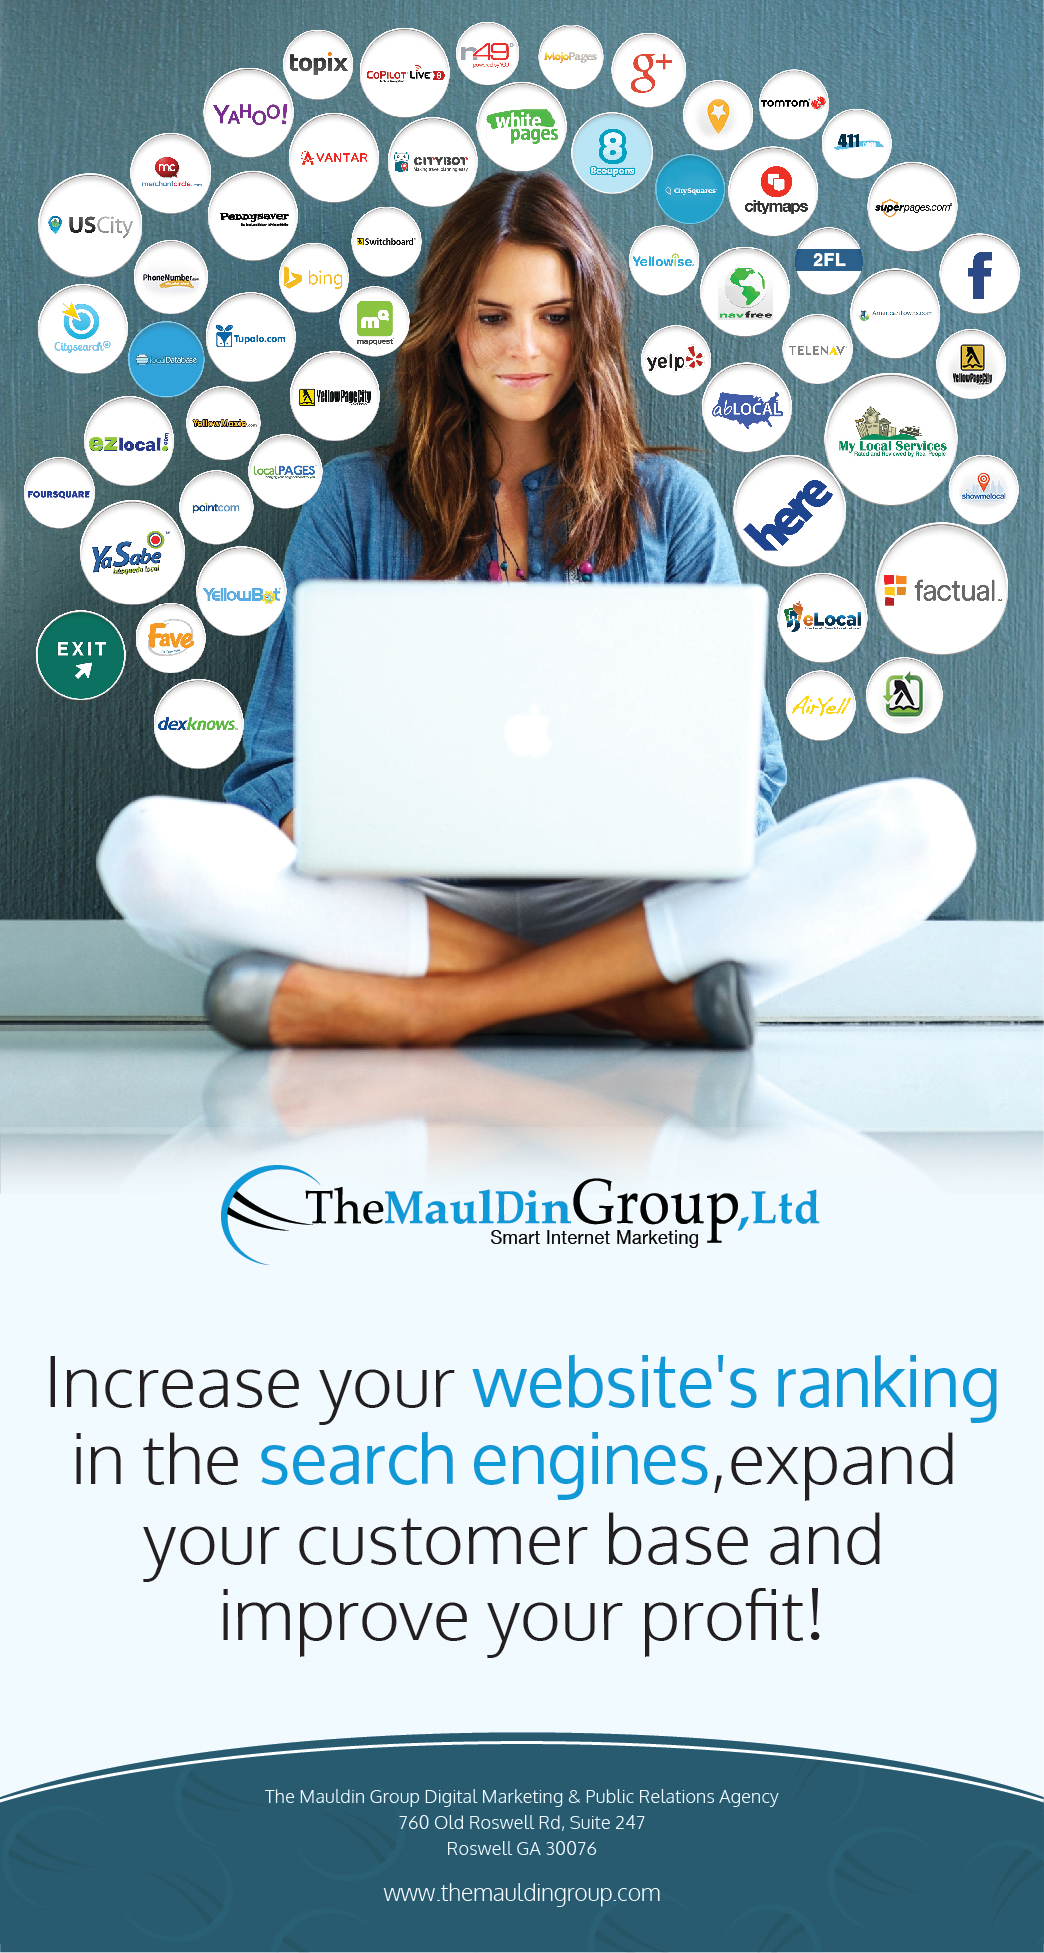 The Mauldin Group Web Design + Internet Marketing image 3